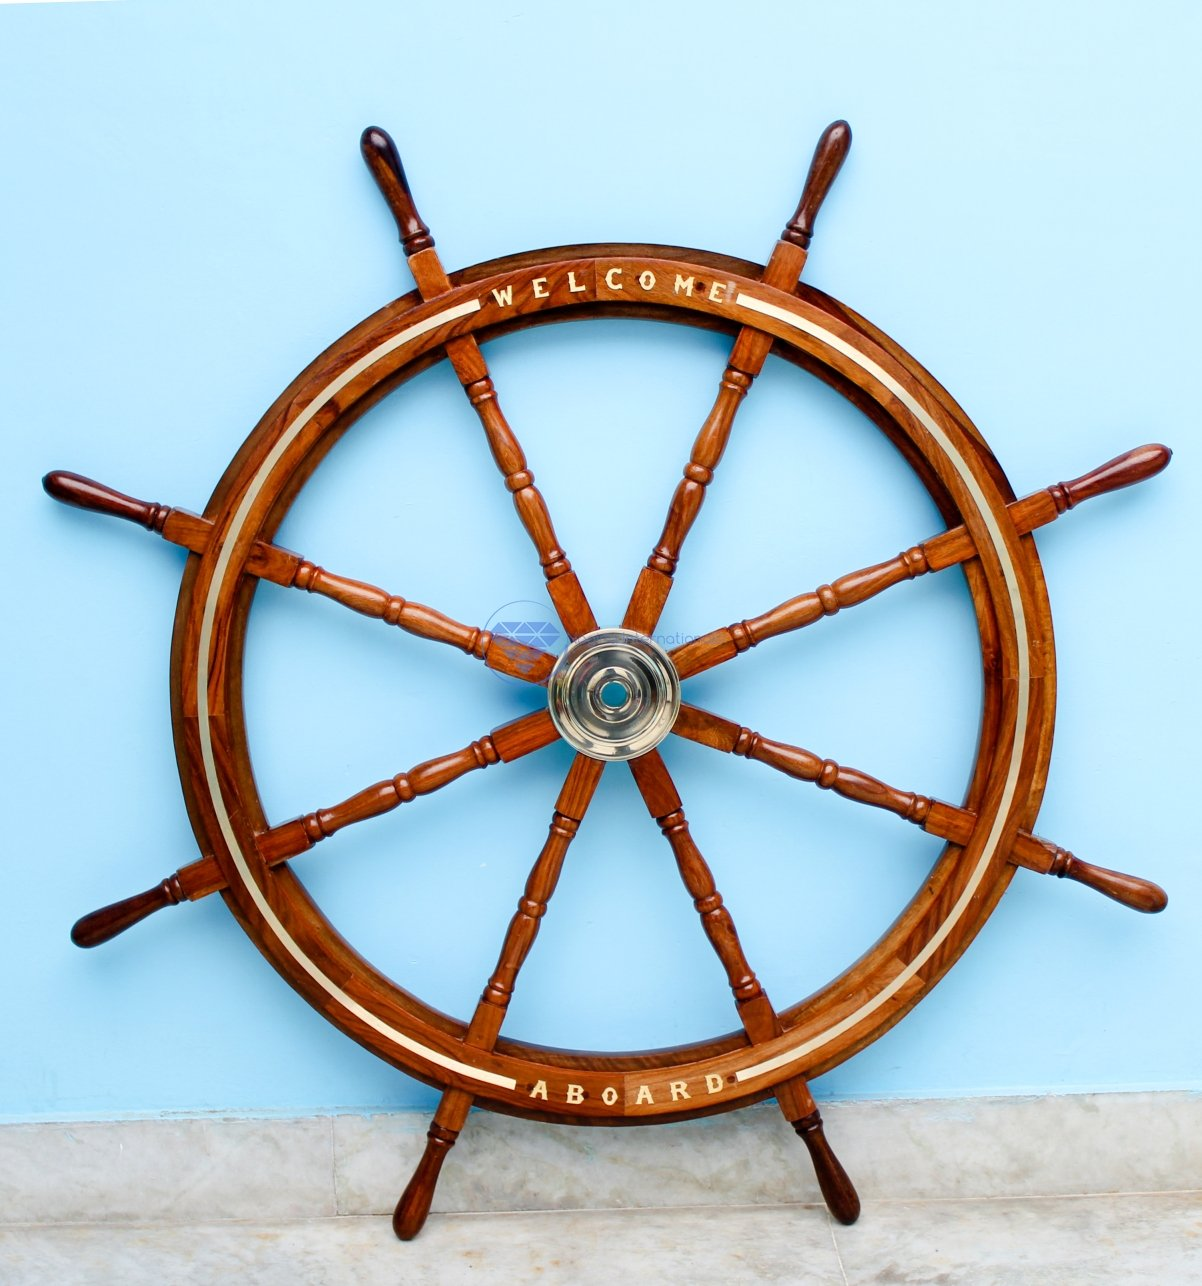 Welcome Board Embedded Premium Nautical Handcrafted Ship's Wheel With Solid Brass Ring Inlaid   Premium Wall Decor Gifts   Nagina International (72 Inches)